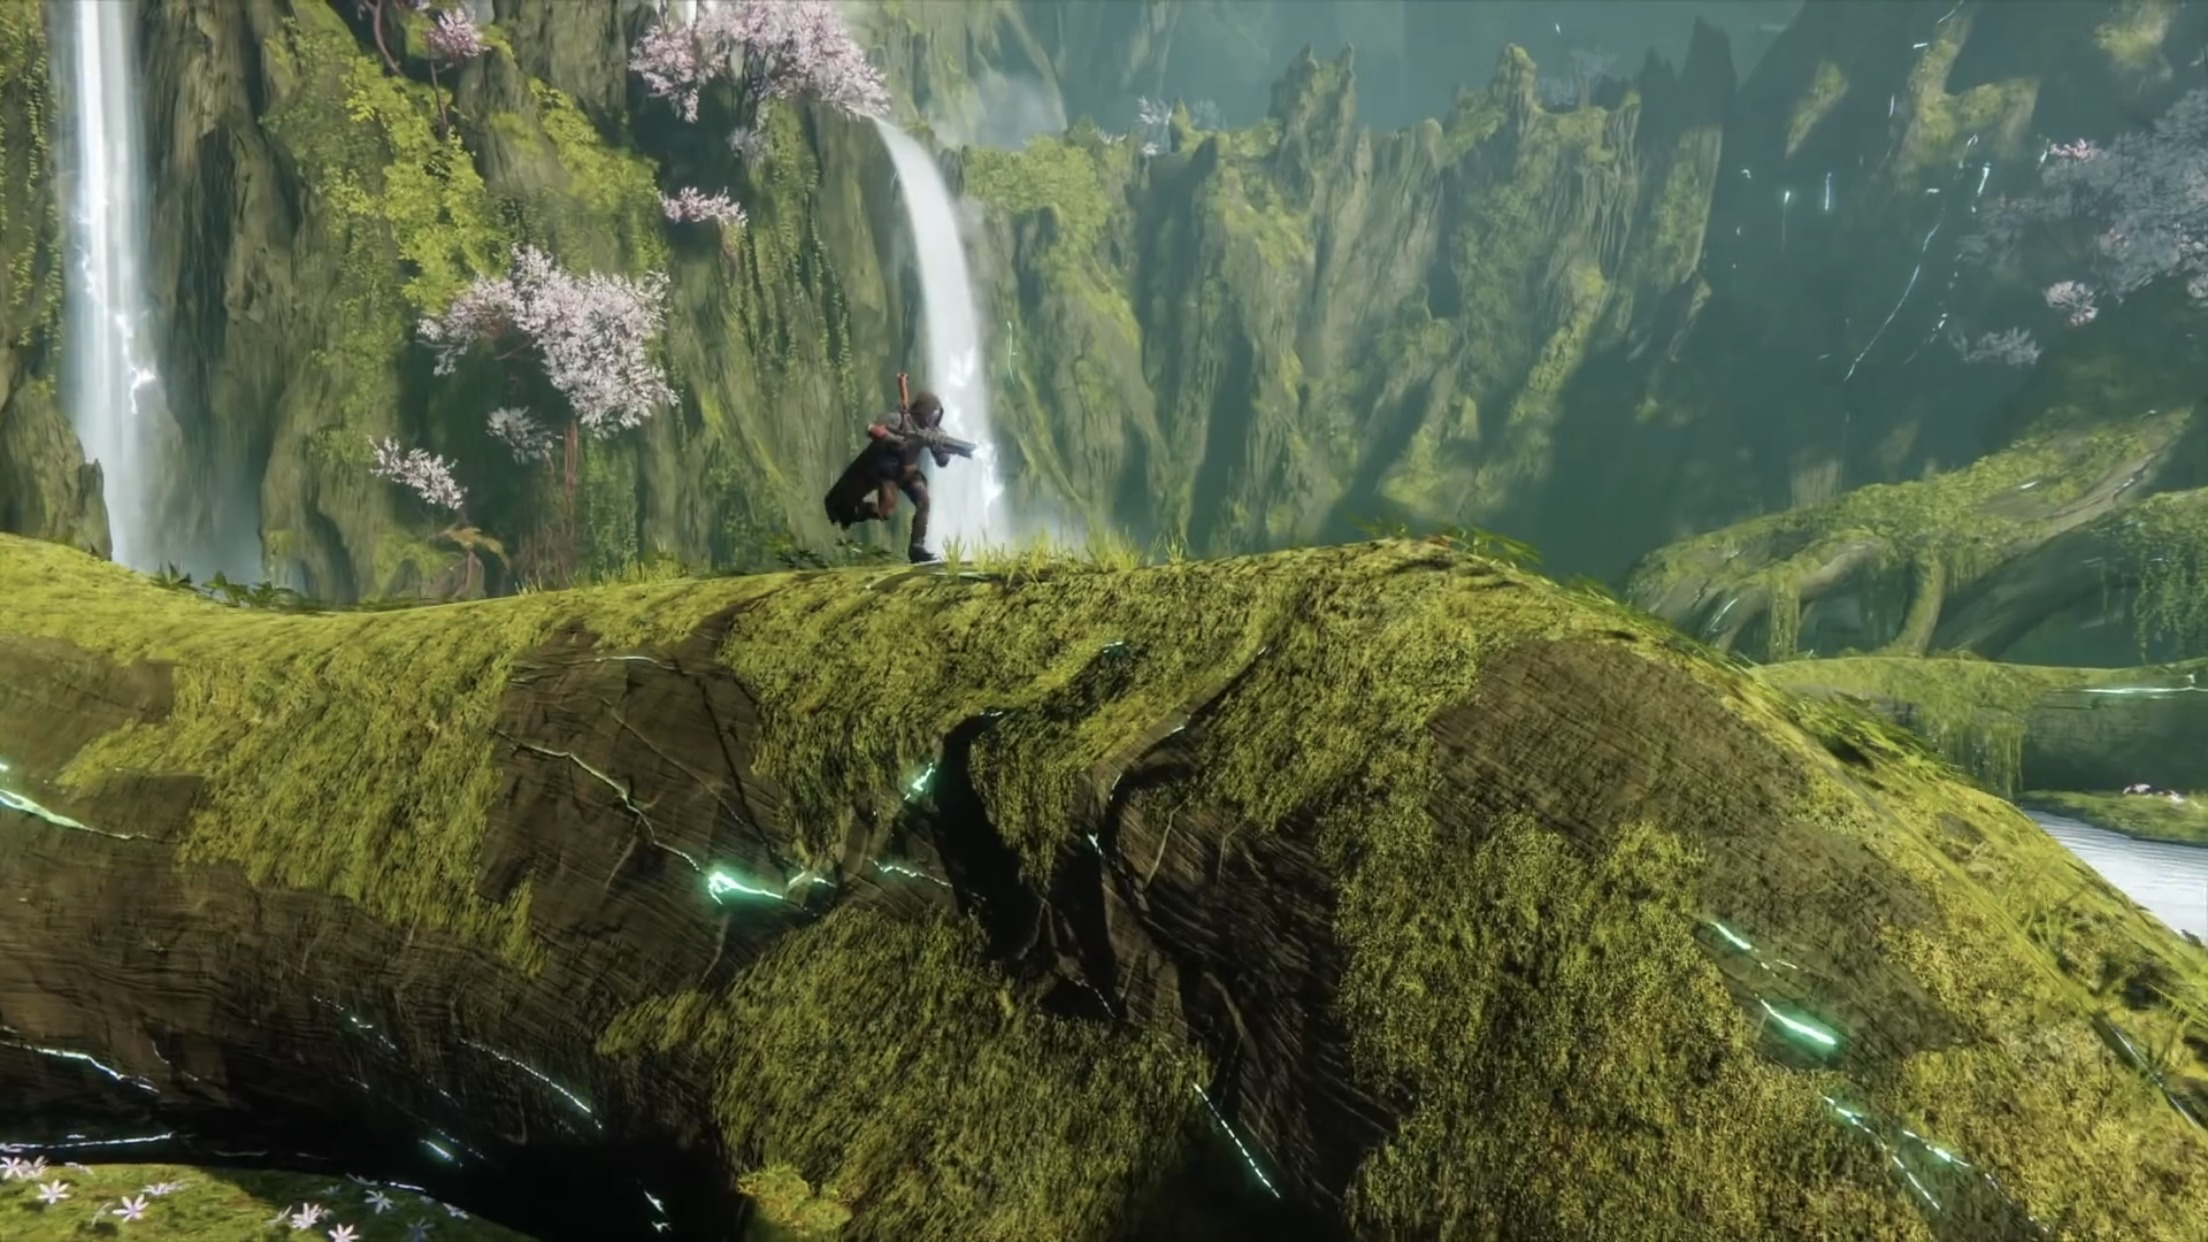 Destiny 2's Shadowkeep launch patch comes with some massive changes to armor and weapons